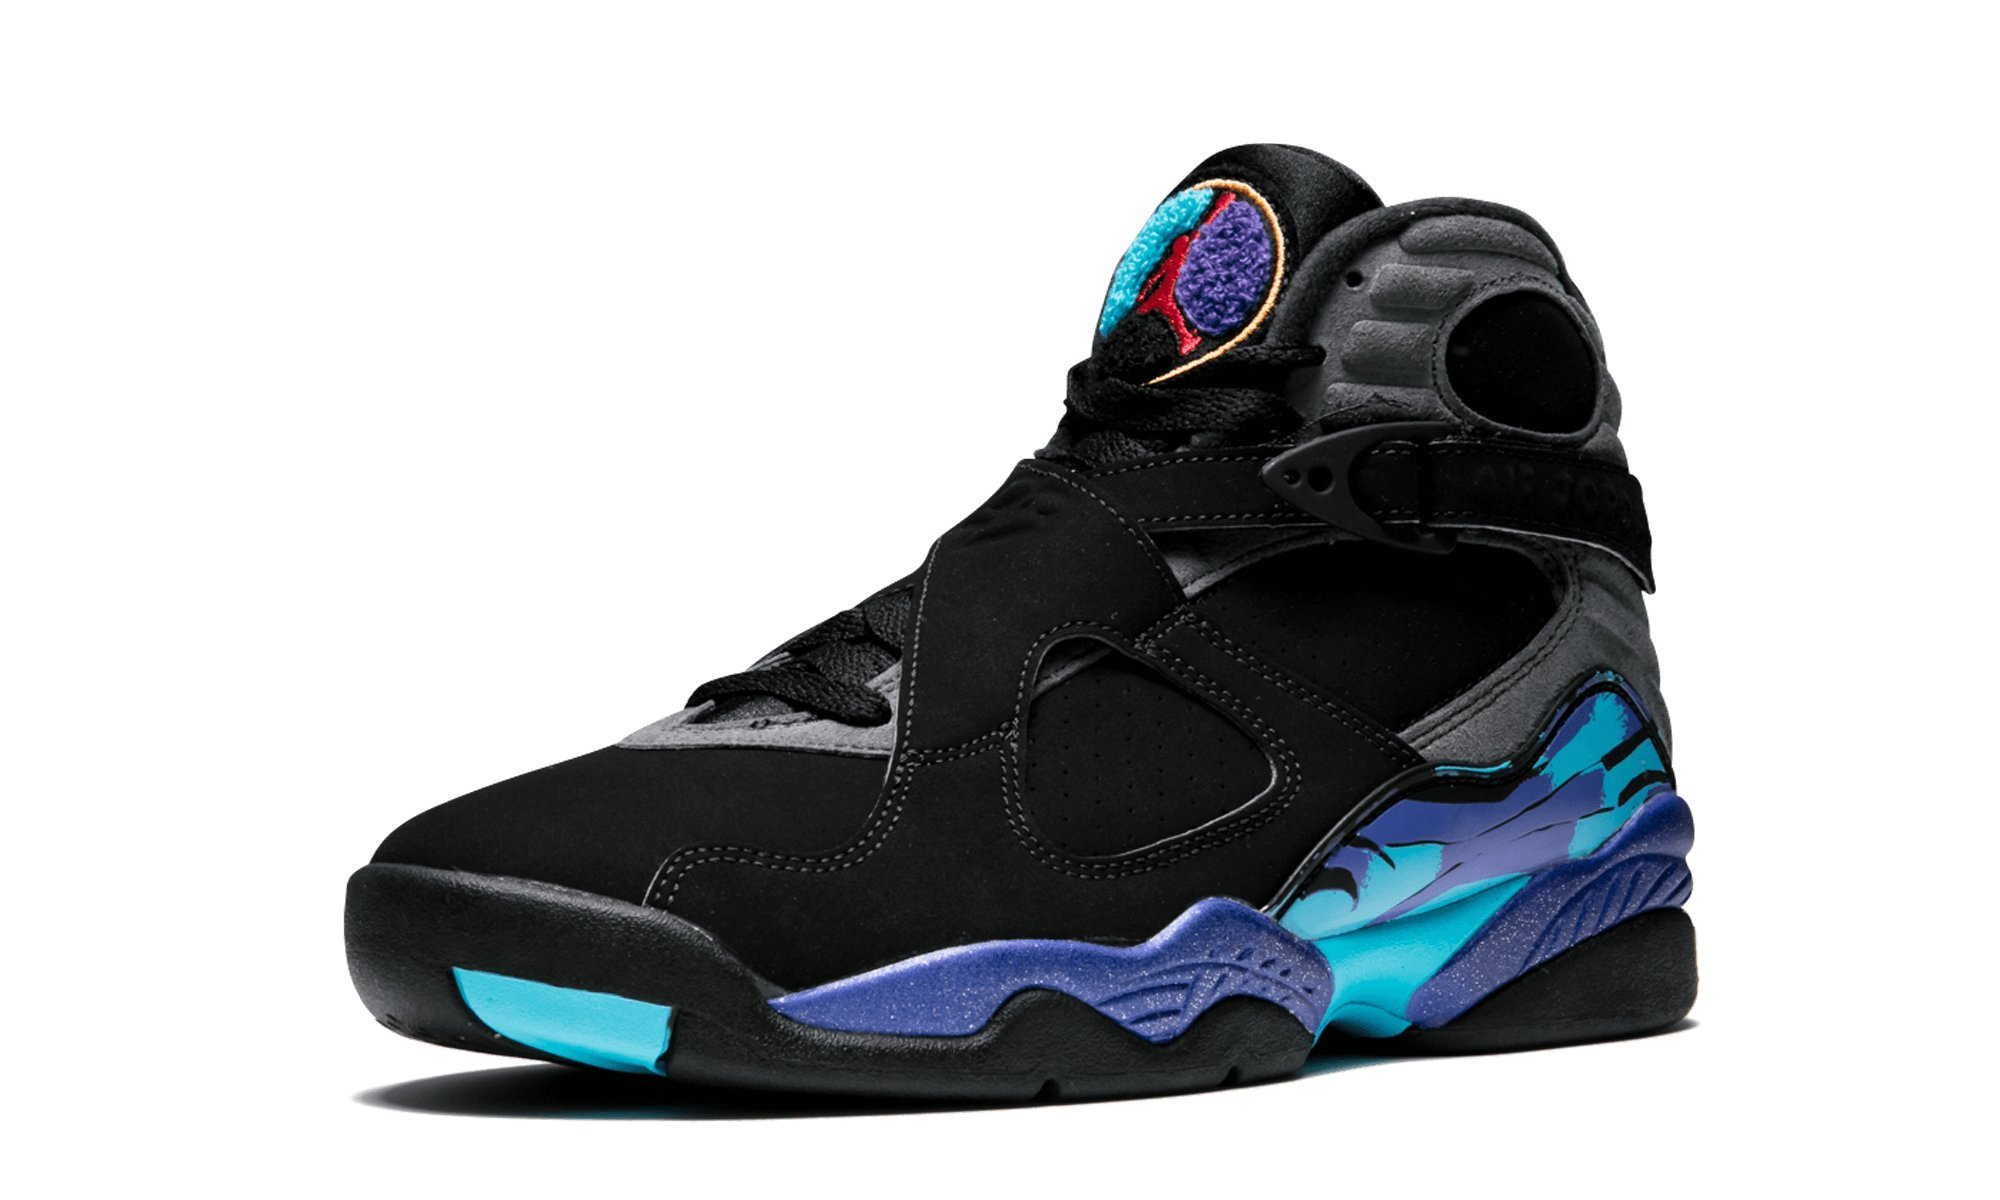 newest ca4d1 13ed3 Galleon - Air Jordan 8 Retro